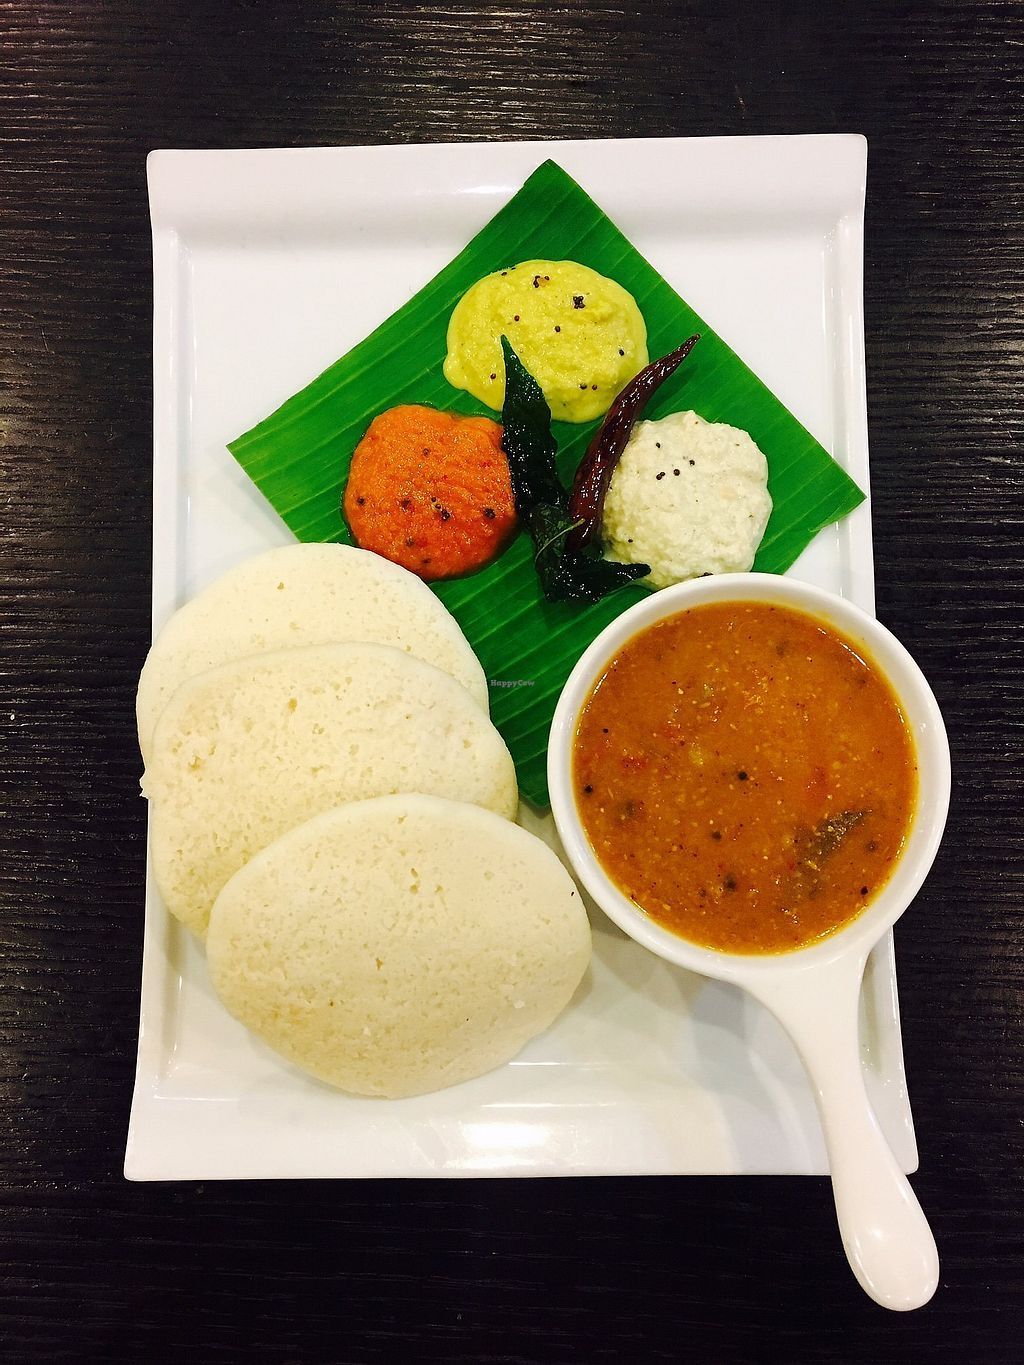 "Photo of Saravanaa Bhavan  by <a href=""/members/profile/SaravanaBhavanLondon"">SaravanaBhavanLondon</a> <br/>Idli Sambar <br/> January 26, 2018  - <a href='/contact/abuse/image/109650/351161'>Report</a>"